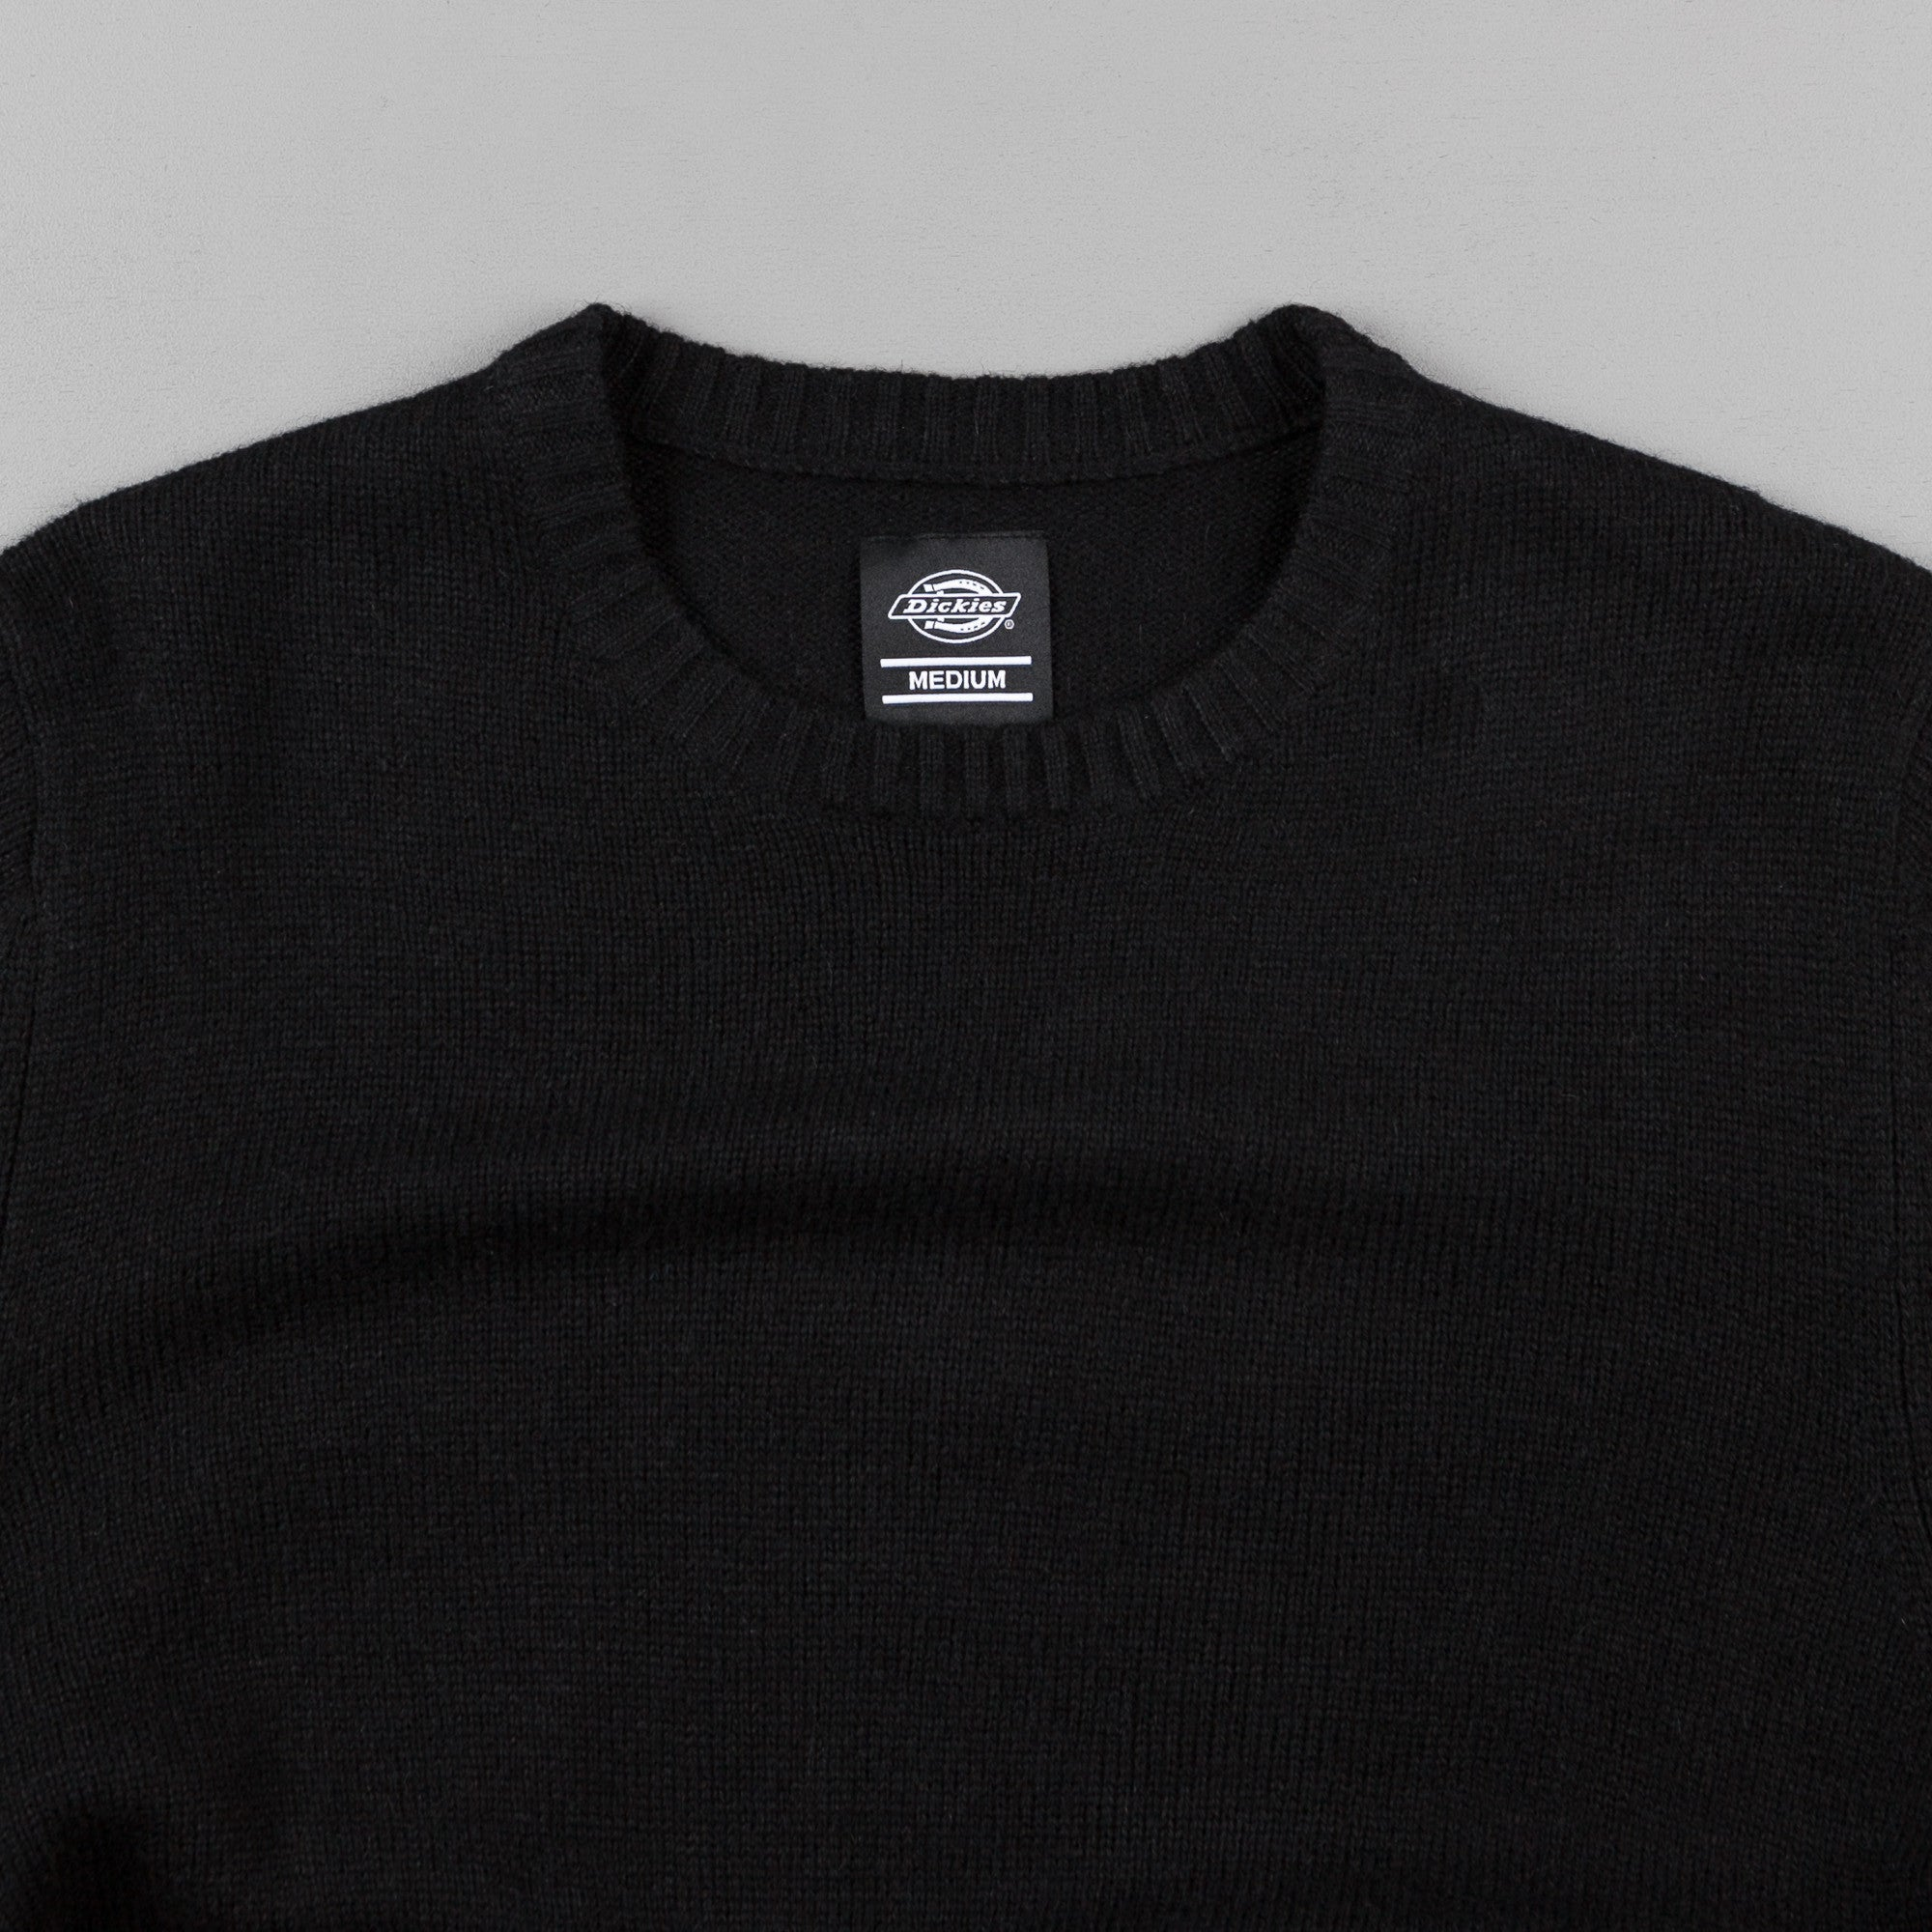 Dickies Shaftsburg Crewneck Sweatshirt - Black